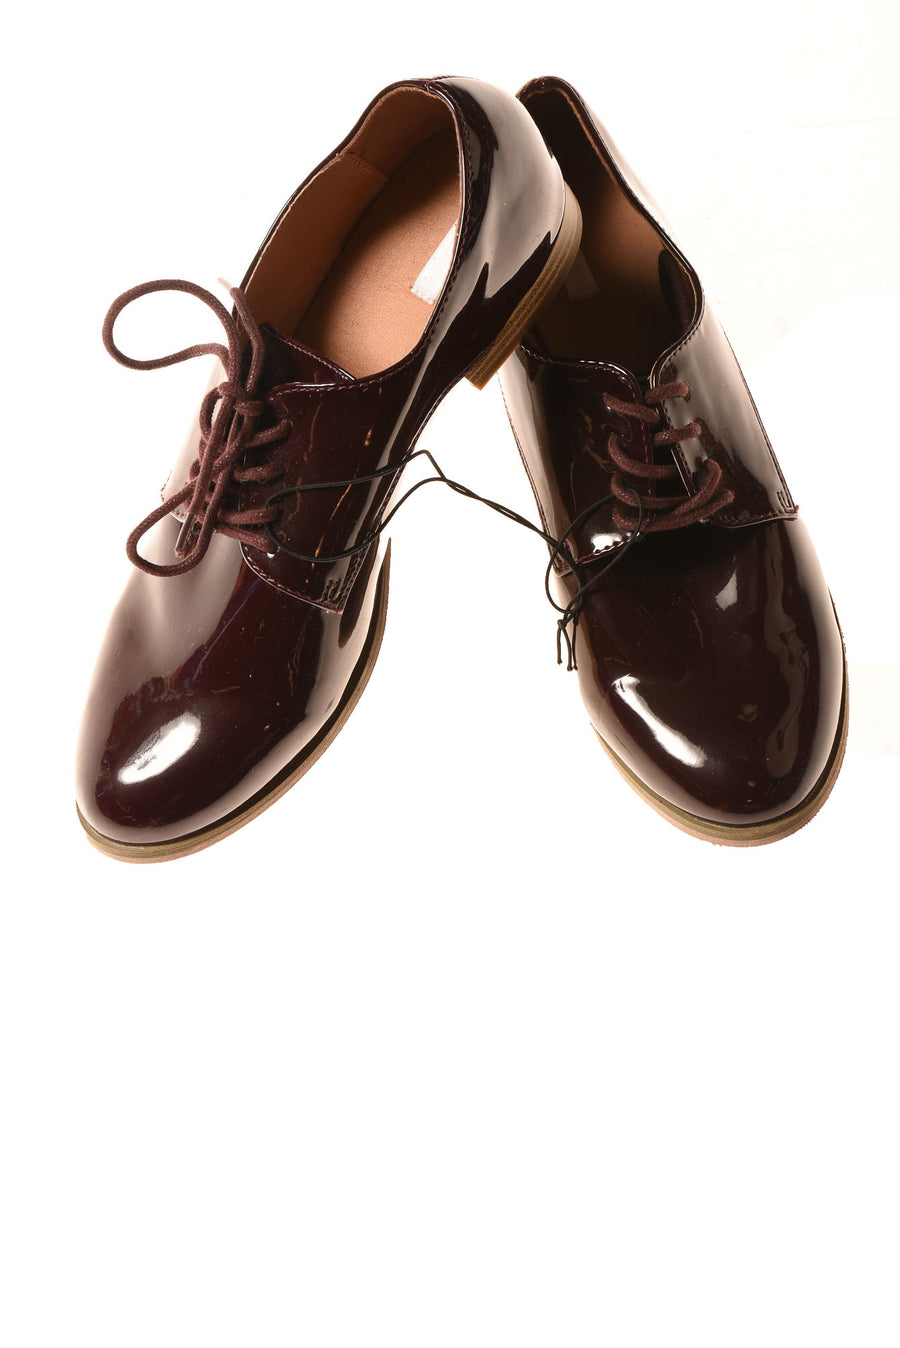 USED Cooperative Women's Shoes 8 Burgundy